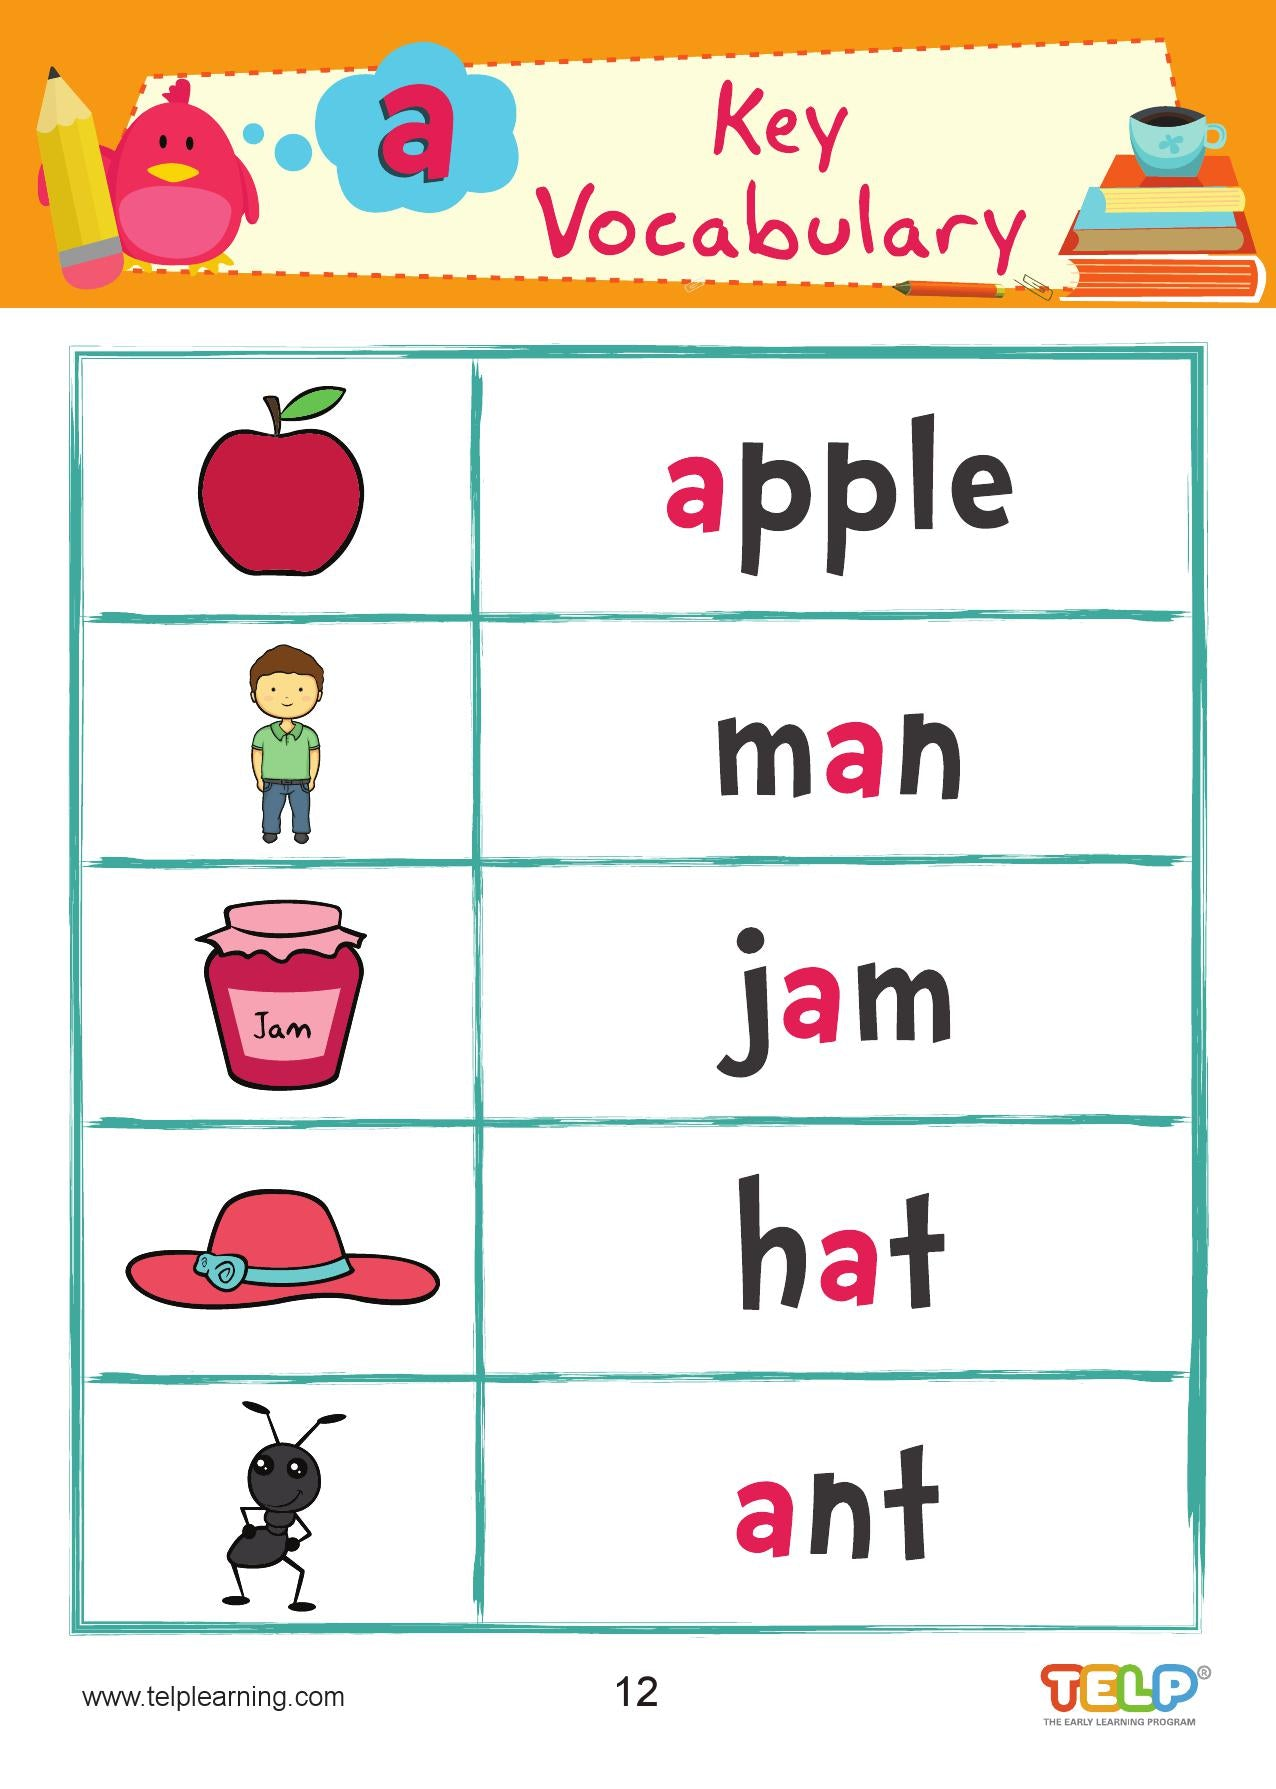 Phonics 2A - Introducing the sounds of the letters - S, A, T, I, P, N, C/K, E, H - CreativeWorksheets